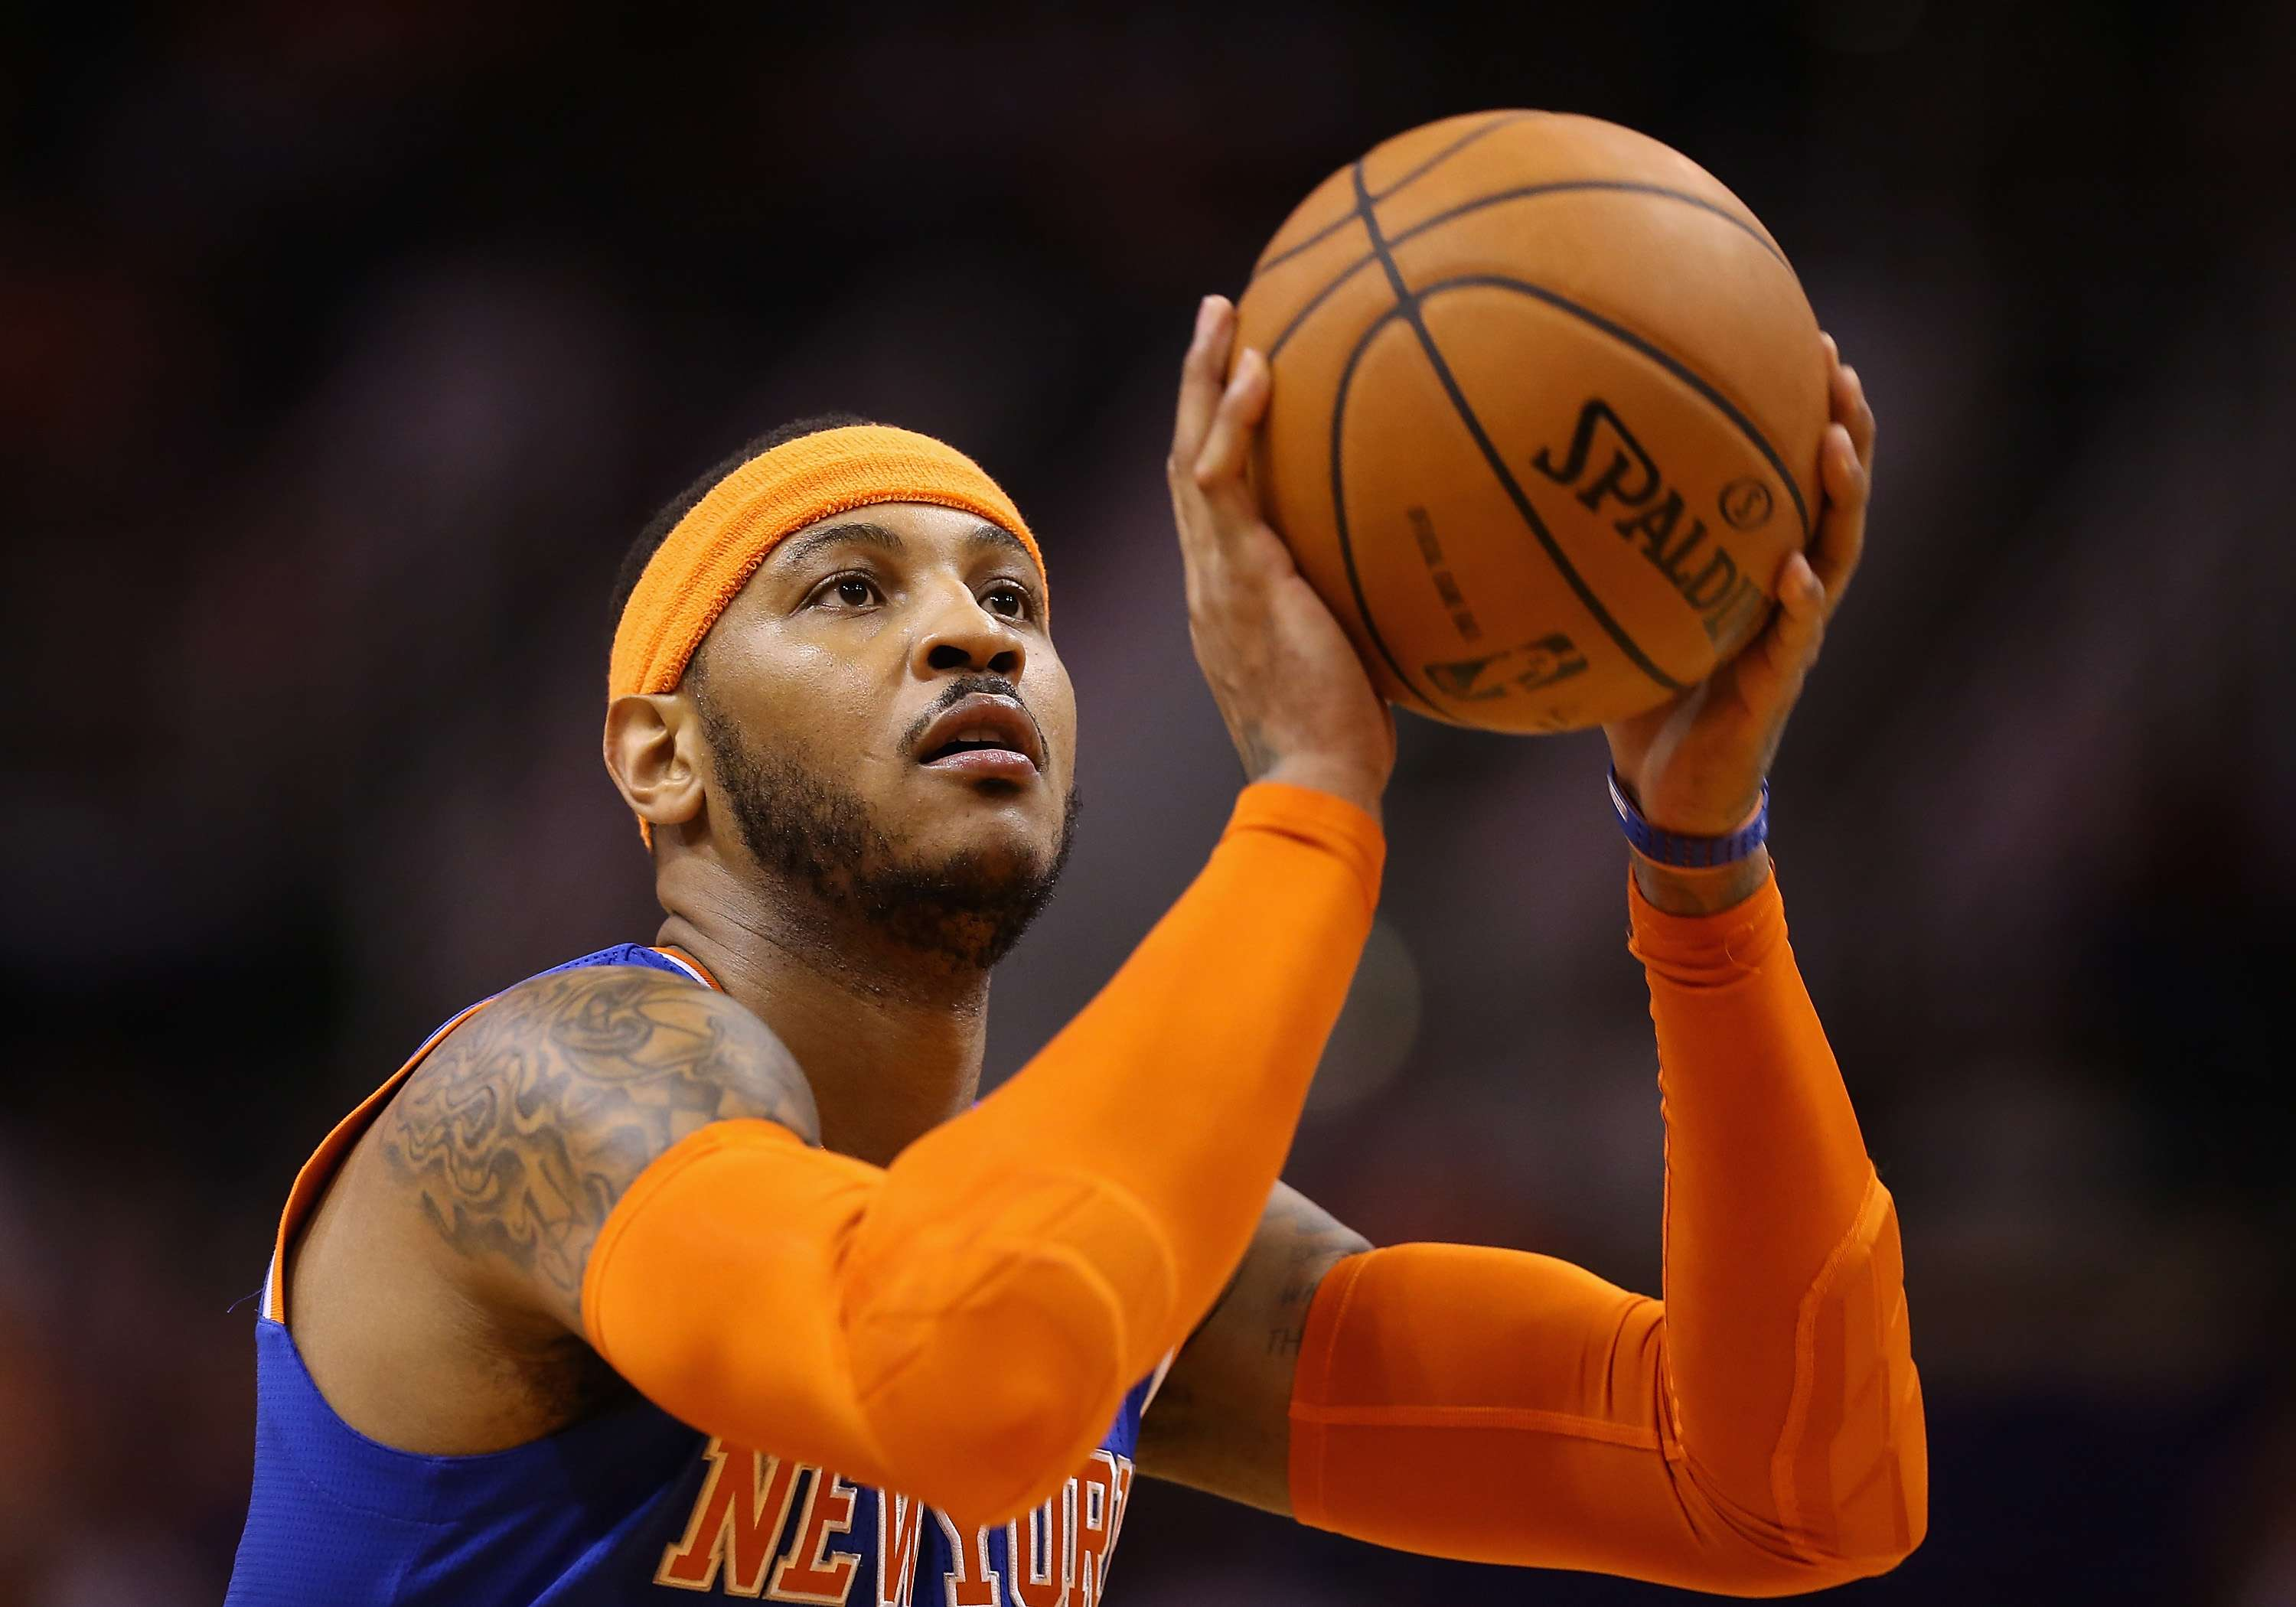 Carmelo Anthony, the soccer star?